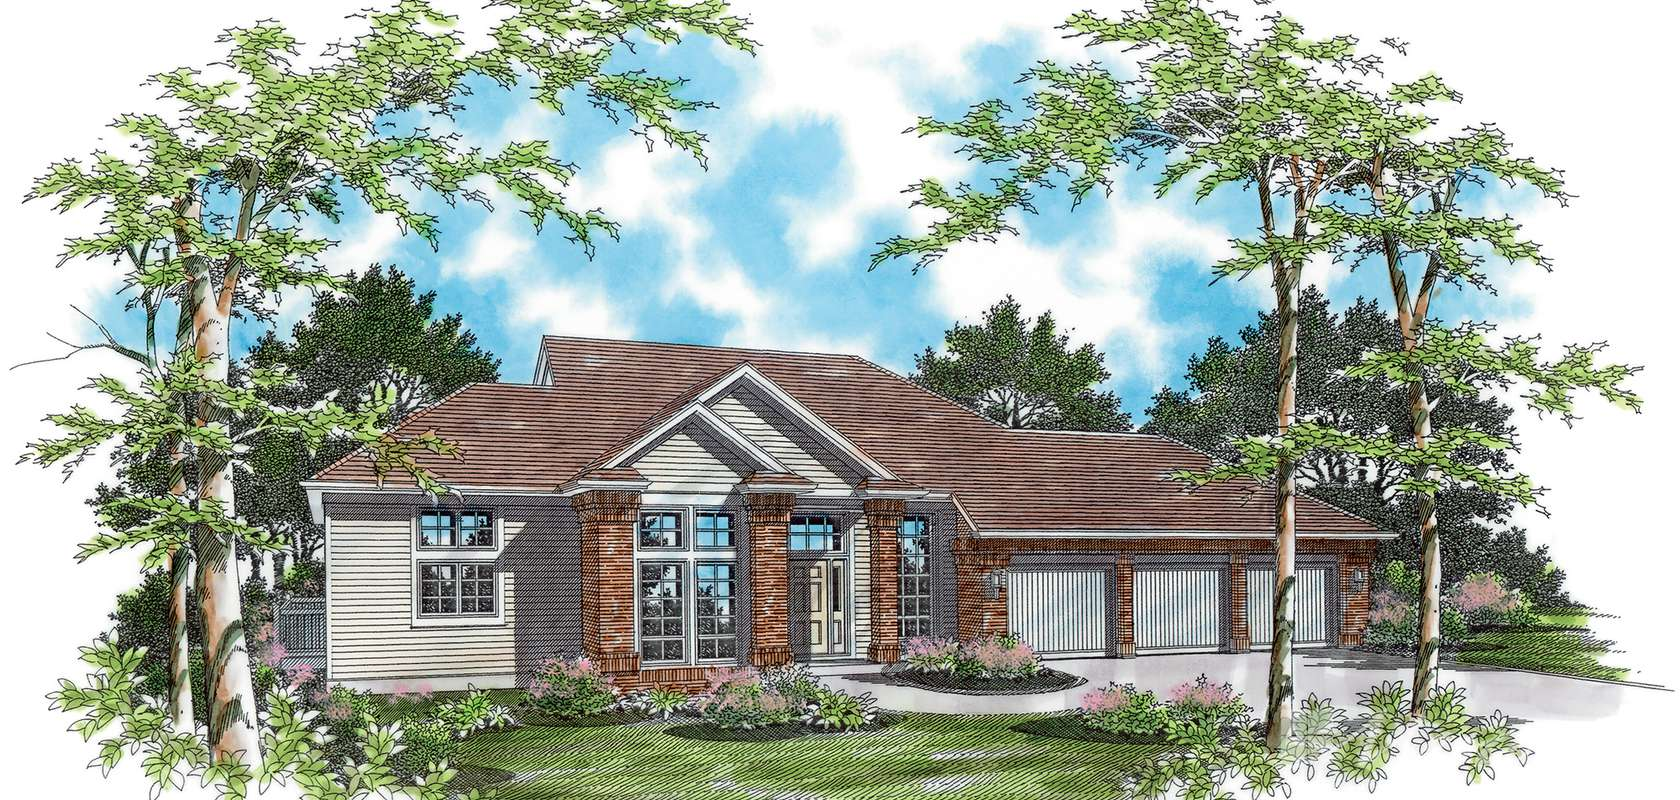 Mascord House Plan 1215: The Earlington